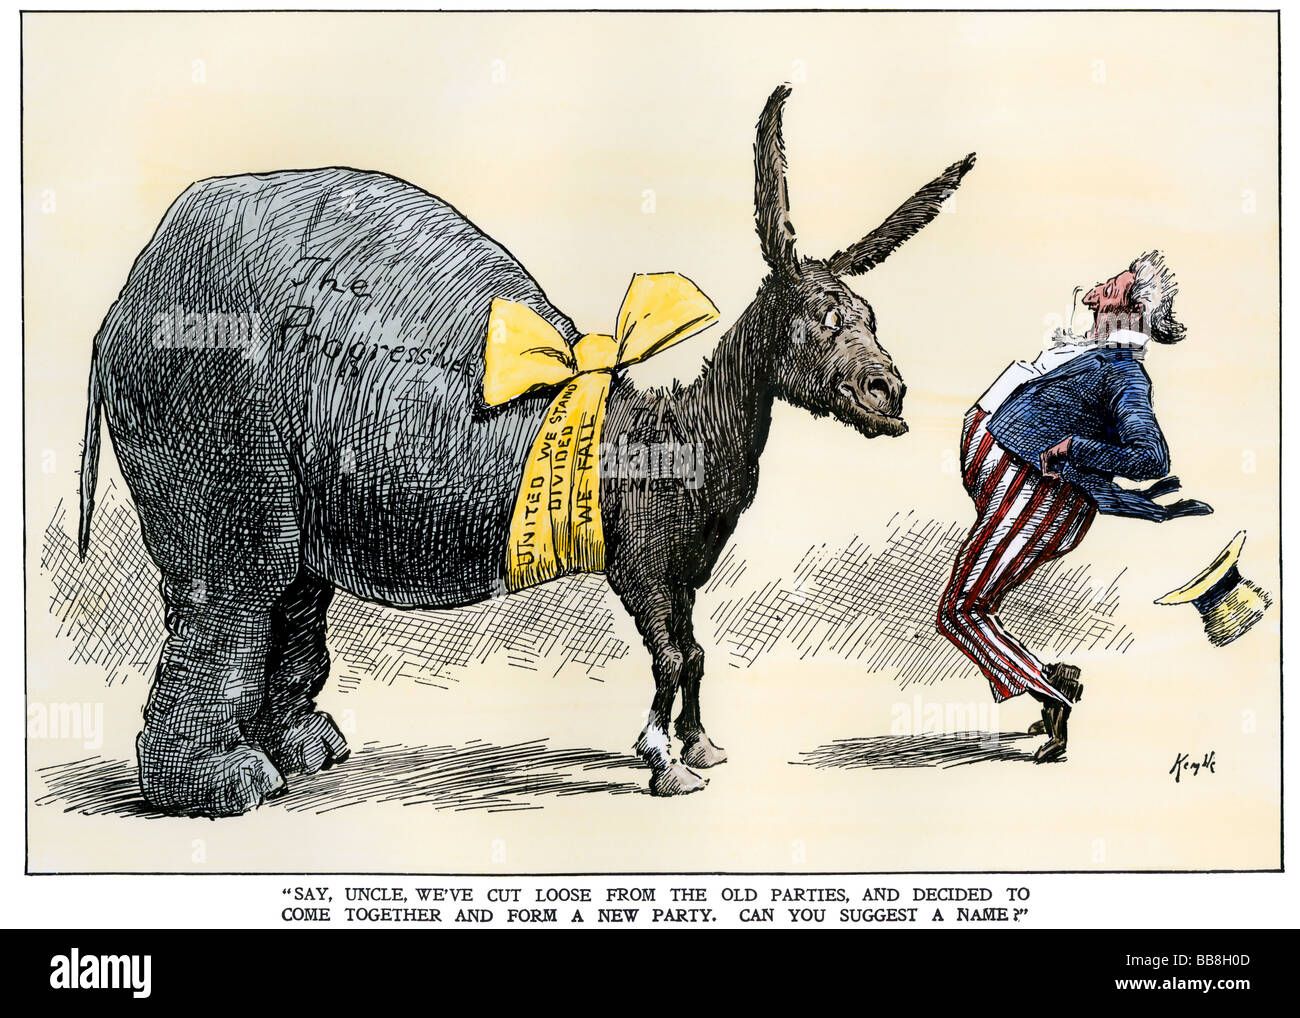 Progressive Republicans join old-fashioned Democrats to suprise Uncle Sam early 1900s. Hand-colored woodcut - Stock Image